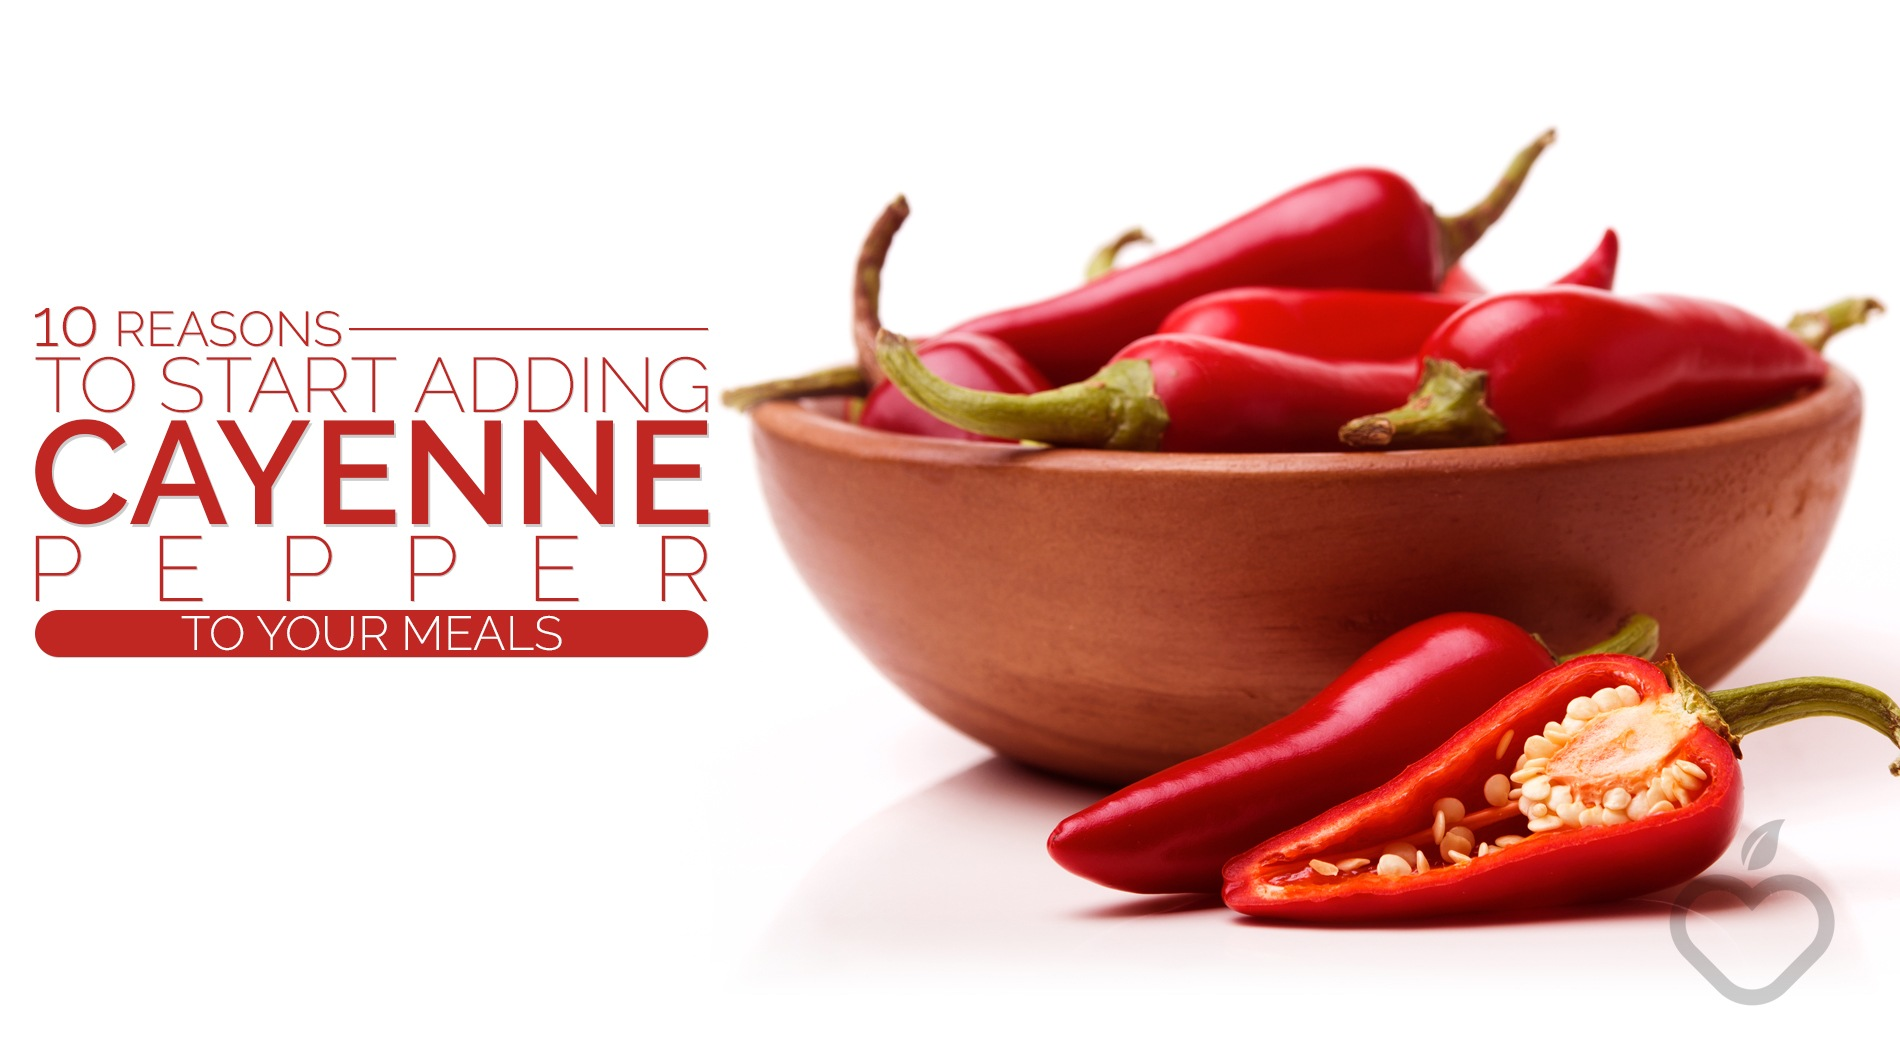 Cayenne Image Design 1 - 10 Reasons To Start Adding Cayenne Pepper To Your Meals